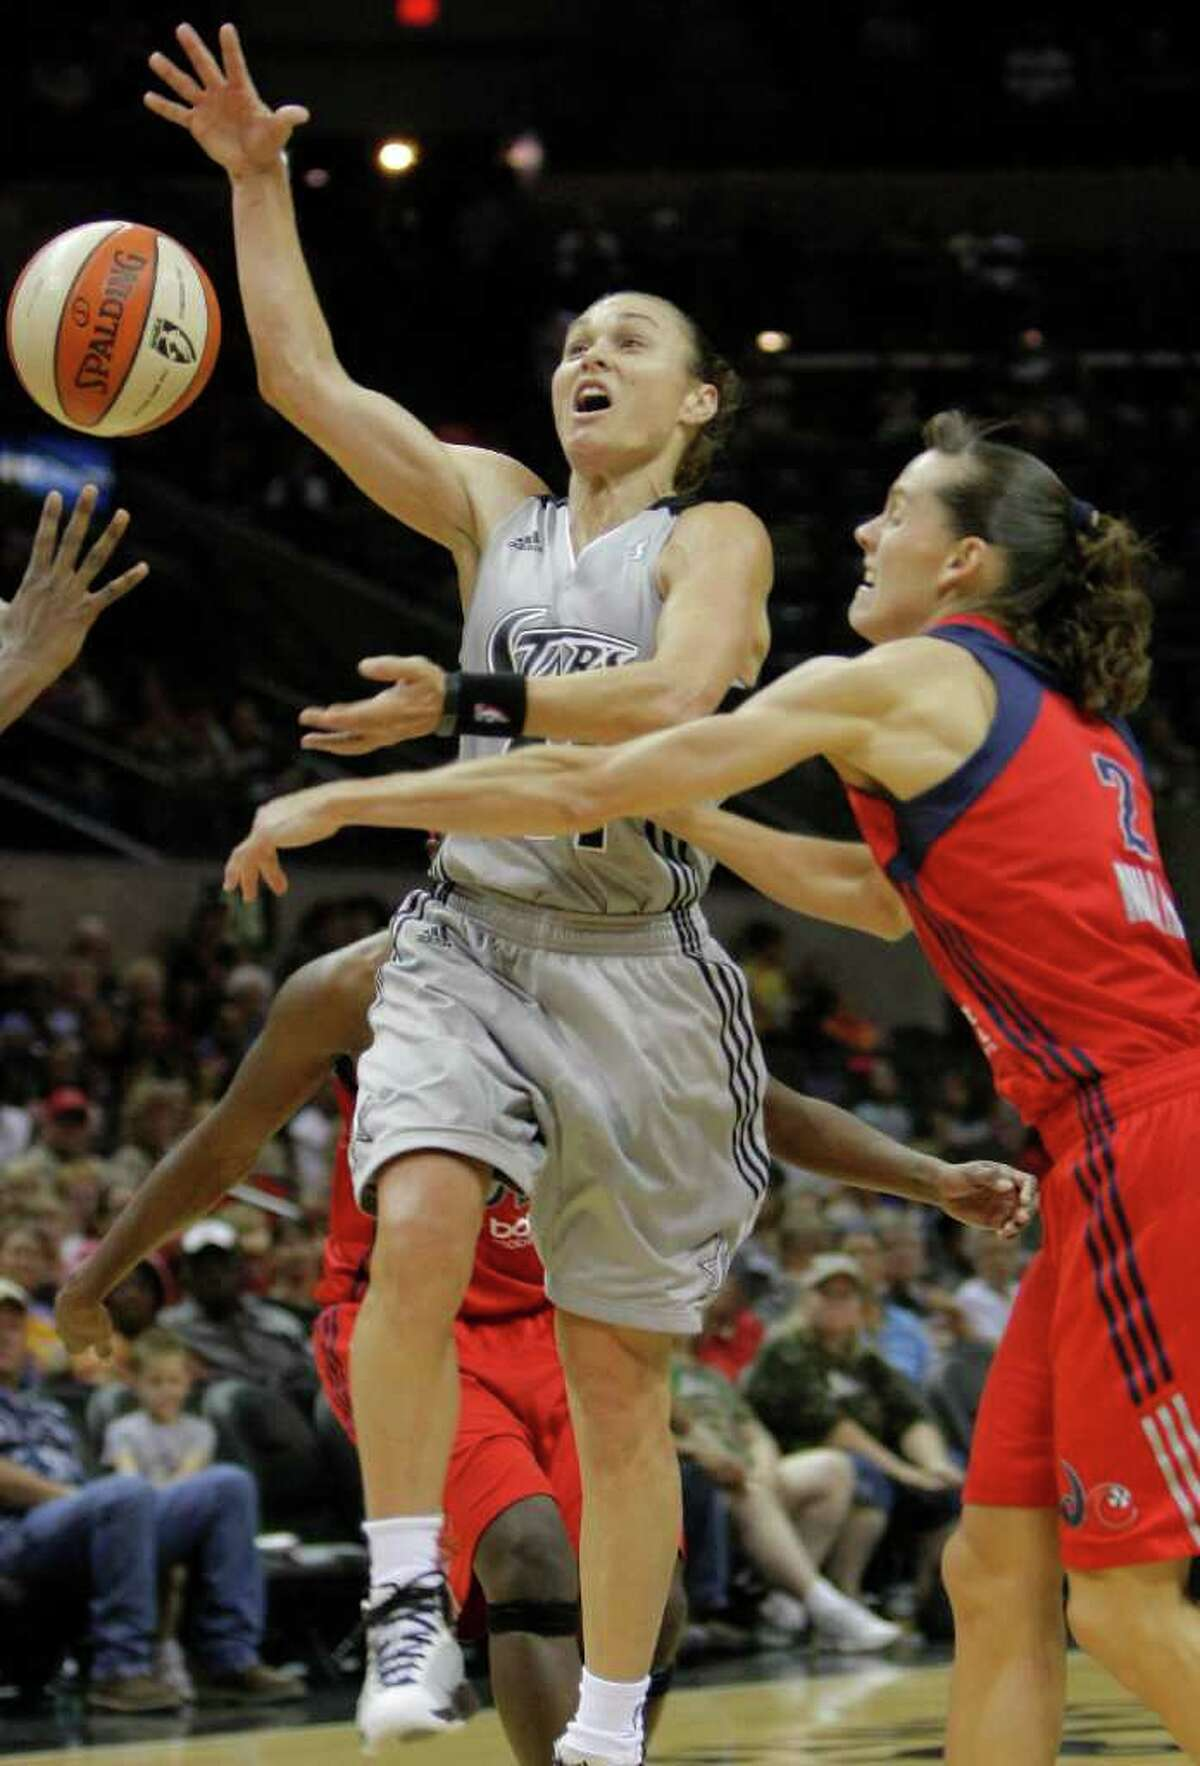 San Antonio Silver Stars' Tully Bevilaqua, left, and Washington Mystics' Kelly Miller chase a loose ball during the second half of a WNBA basketball game, Saturday, Sept. 10, 2011, in San Antonio. San Antonio won 82-74.